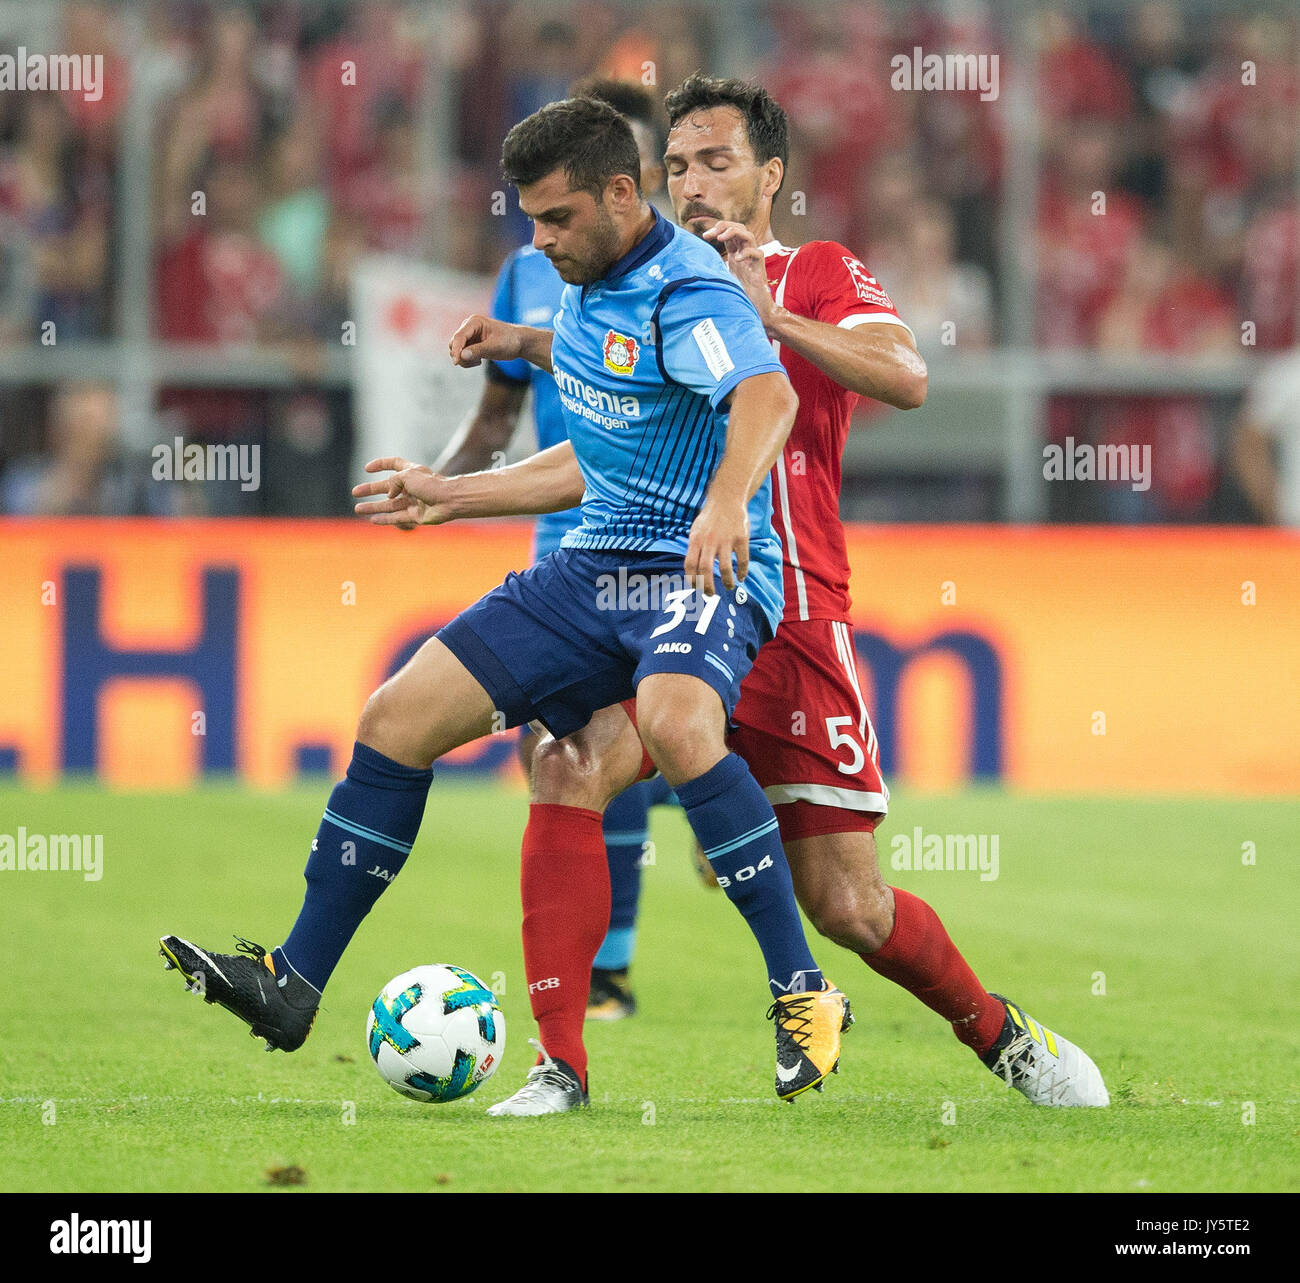 Deutschland. 18th Aug, 2017. Kevin VOLLAND (Leverkusen) /vorne im Zweikampf mit Mats HUMMELS (FC Bayern) GES/ Fussball/ 1. Bundesliga: FC Bayern Munich - Bayer 04 Leverkusen, 18.08.2017 -- Football/ Soccer 1st. German Bundesliga Division: Bavaria Munich vs Bayer 04 Leverkusen, Munich, August 18, 2017 | Verwendung weltweit Credit: dpa/Alamy Live News - Stock Image